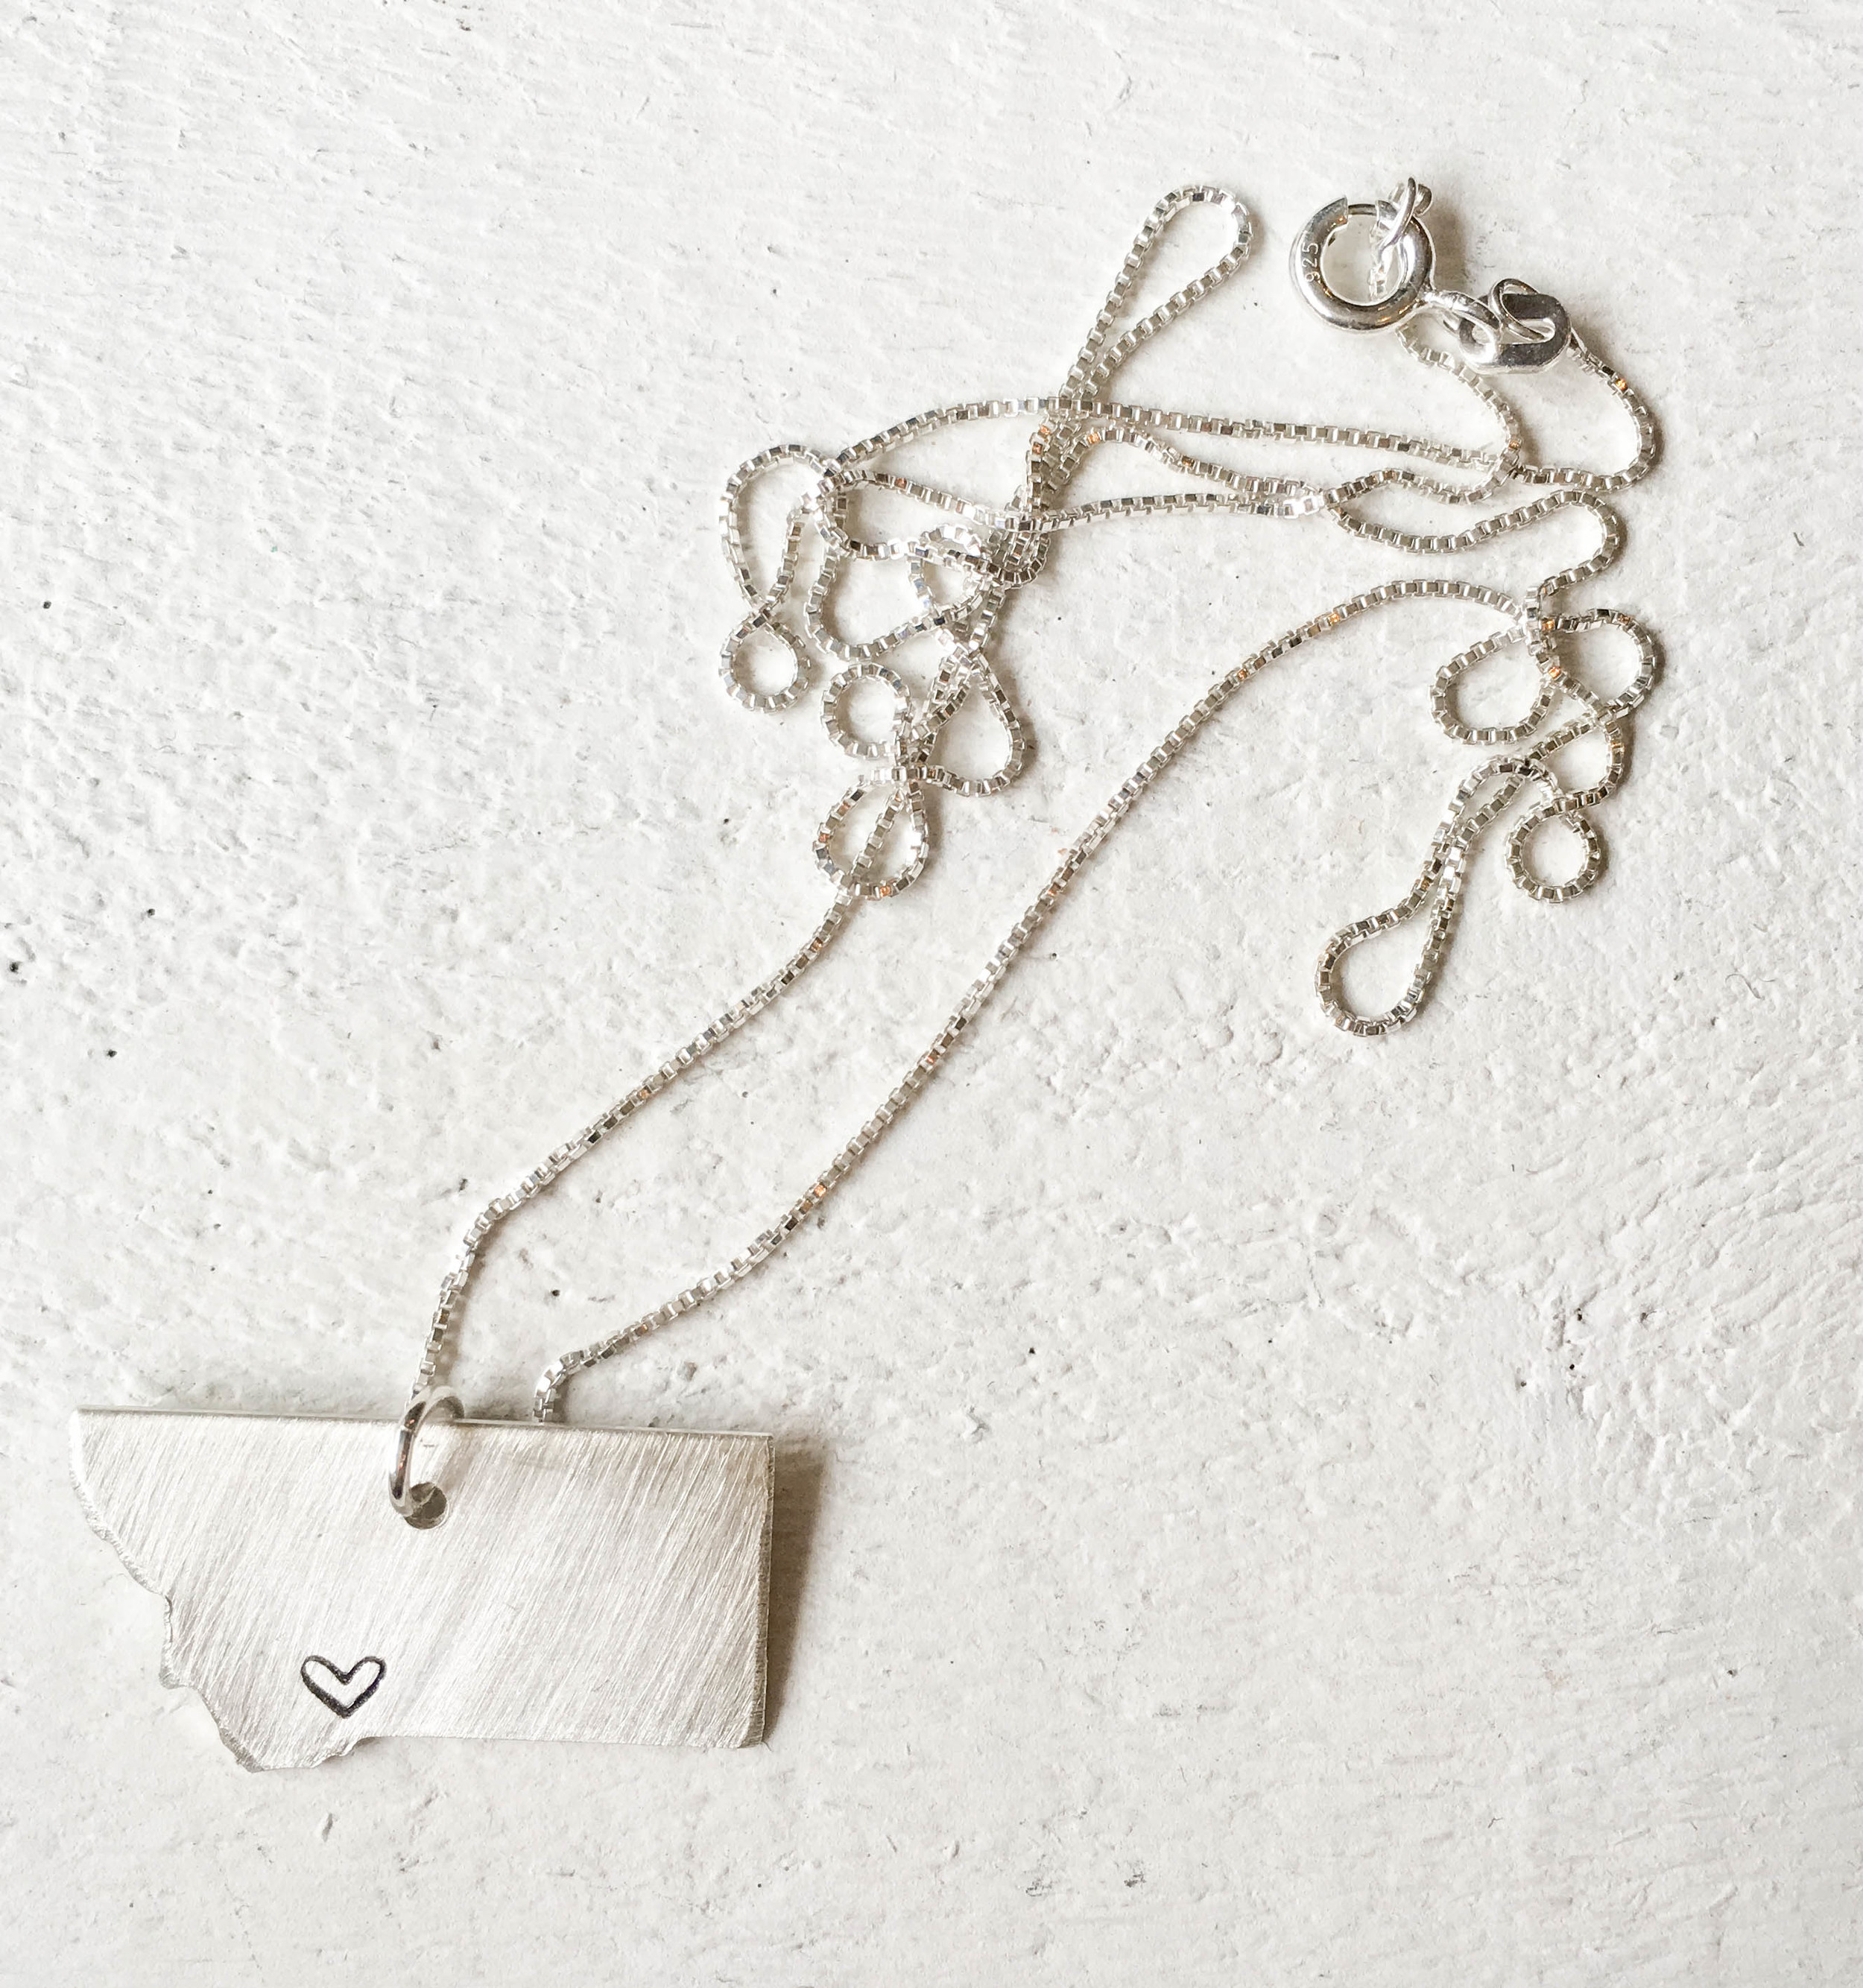 Montana pendant, one of the most popular items at Hattie Rex